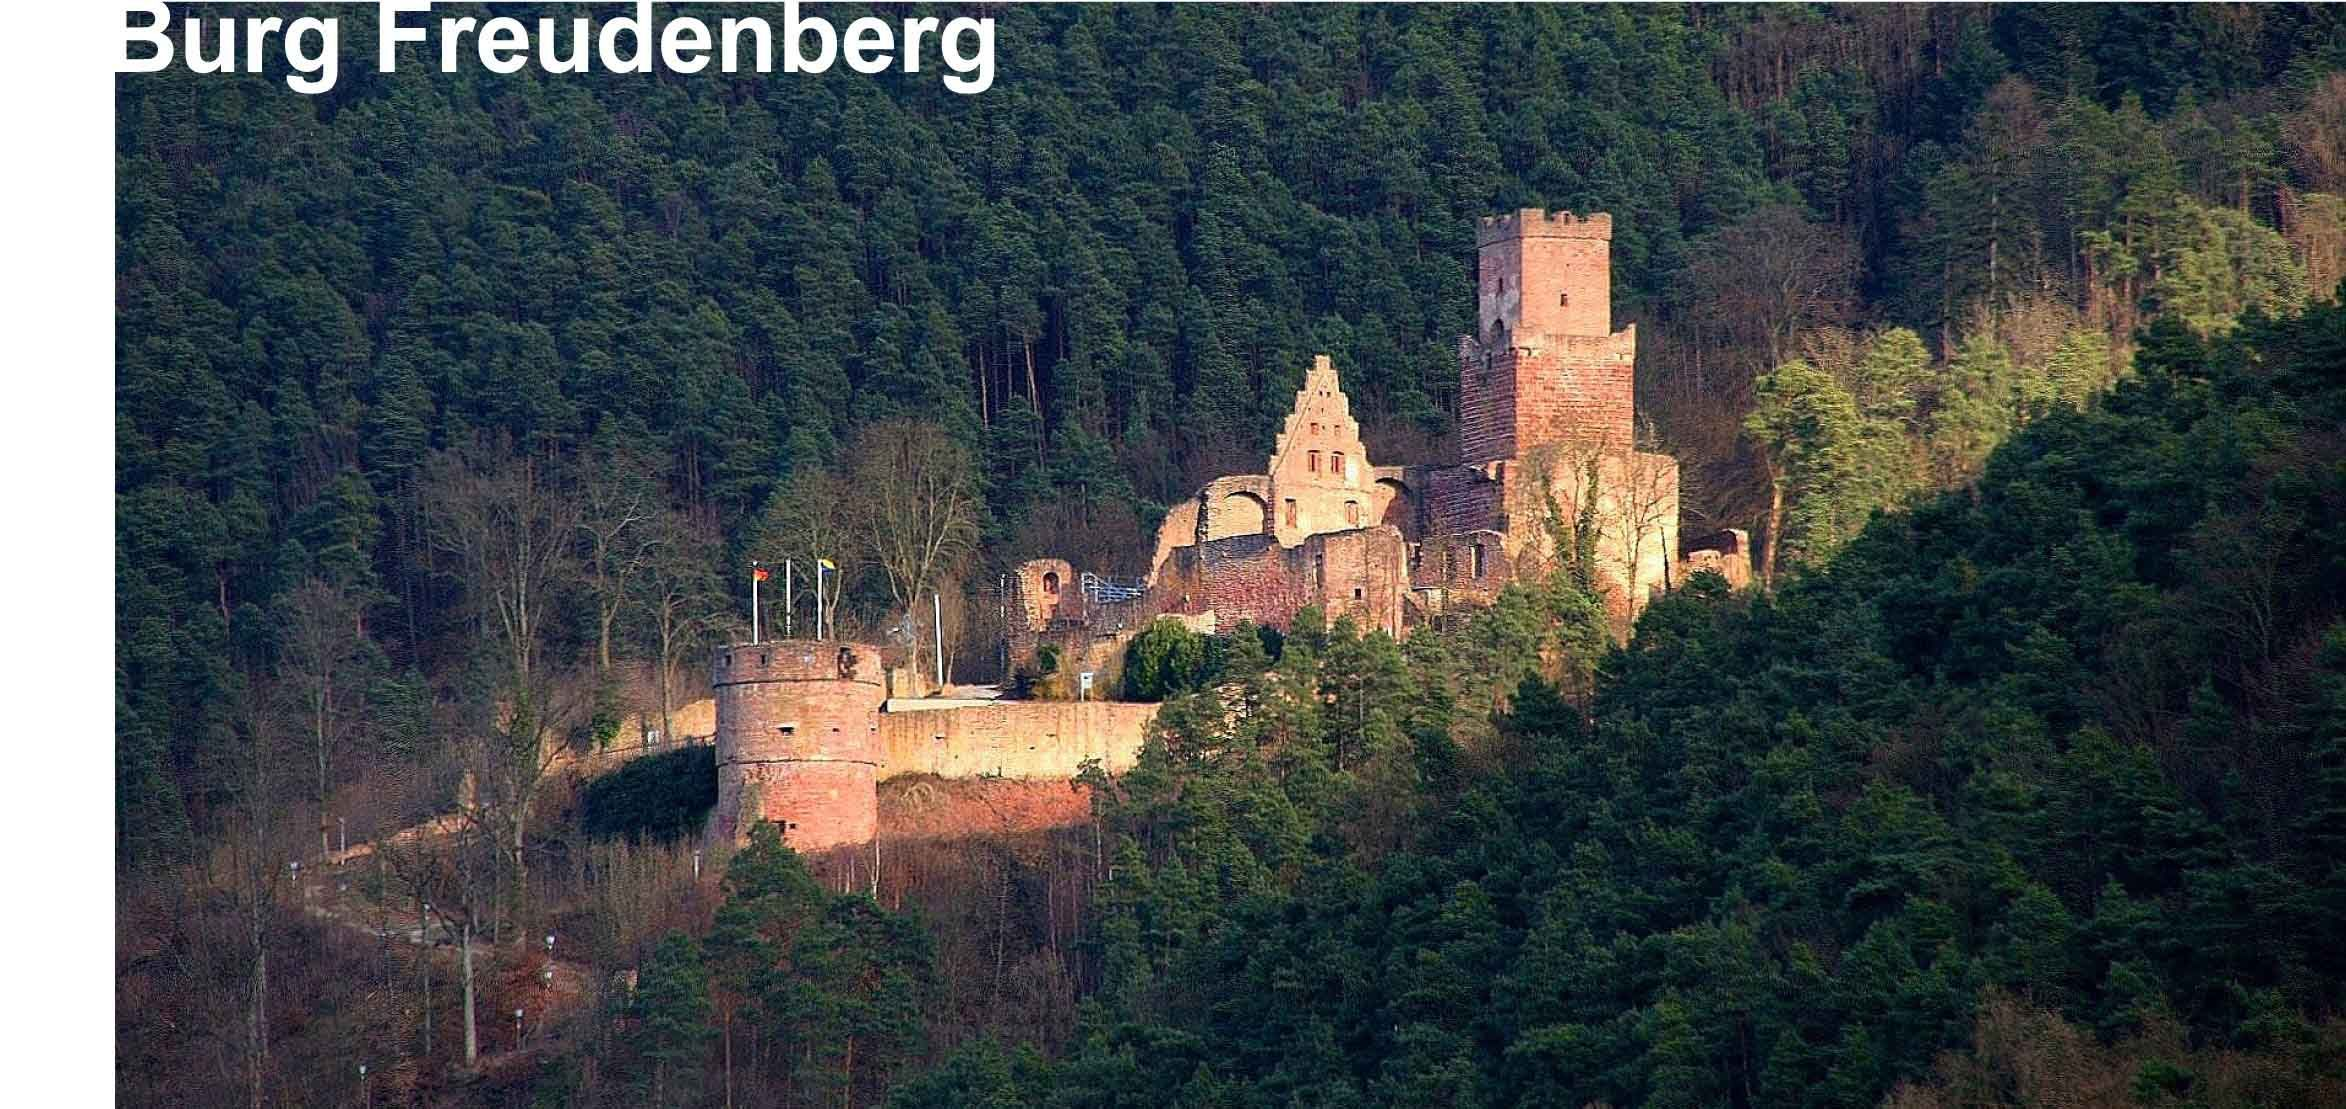 schl sser und burgen in baden w rttemberg burg freudenberg. Black Bedroom Furniture Sets. Home Design Ideas